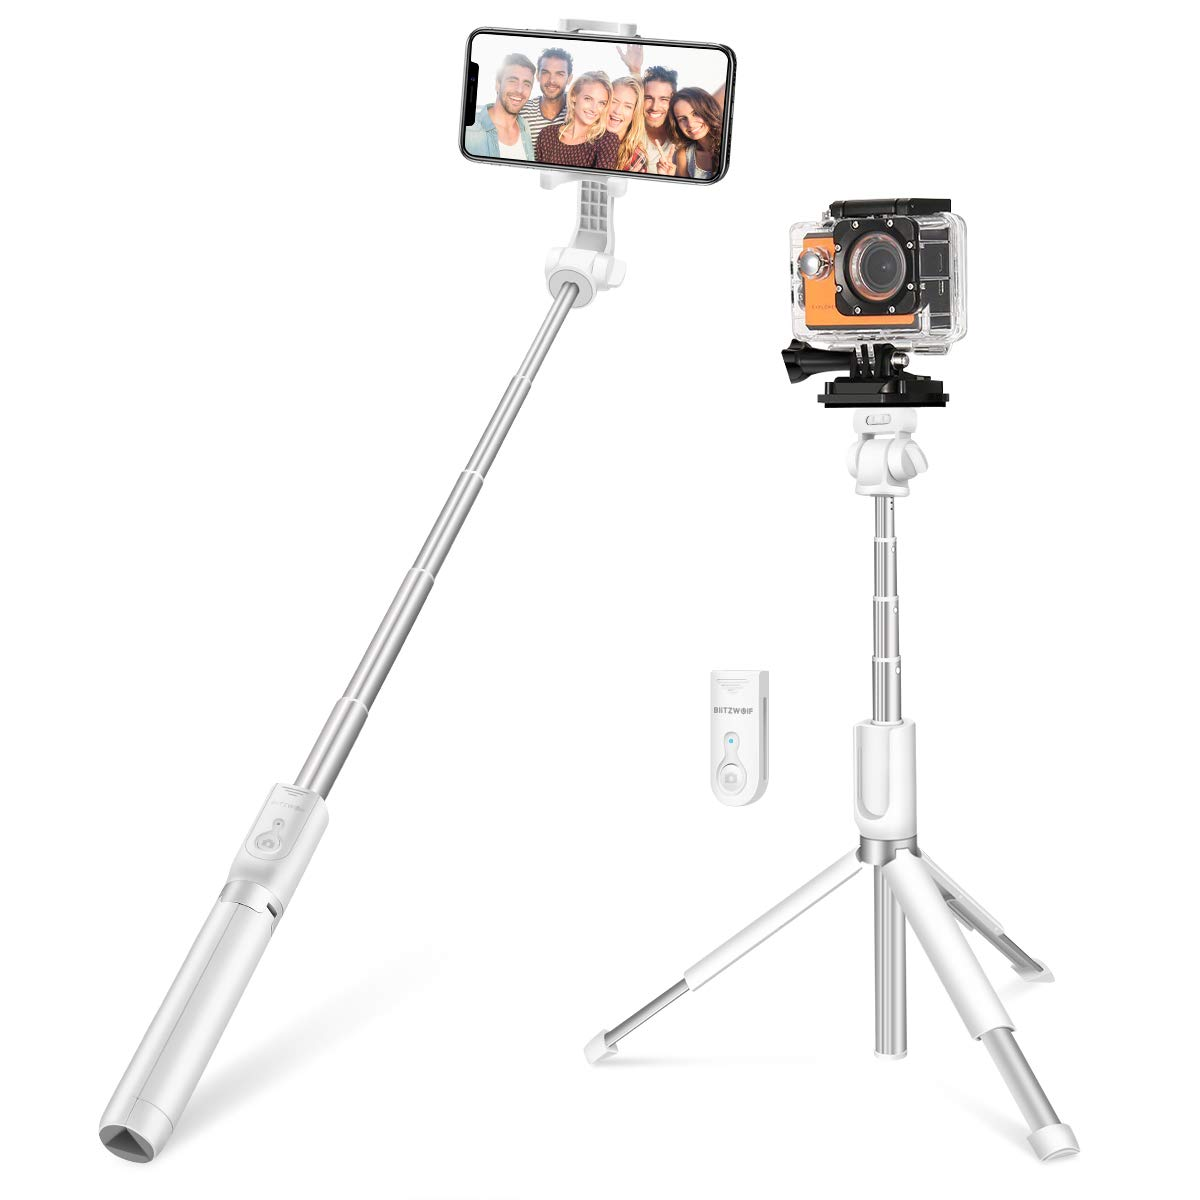 Selfie Stick for Cameras, Gopro, iPhone, Android - BlitzWolf 5 in 1 32 inch Super Long Extendable Bluetooth Selfie Stick Tripod with Removable Remote White (Extended Version) BW-BS5-W